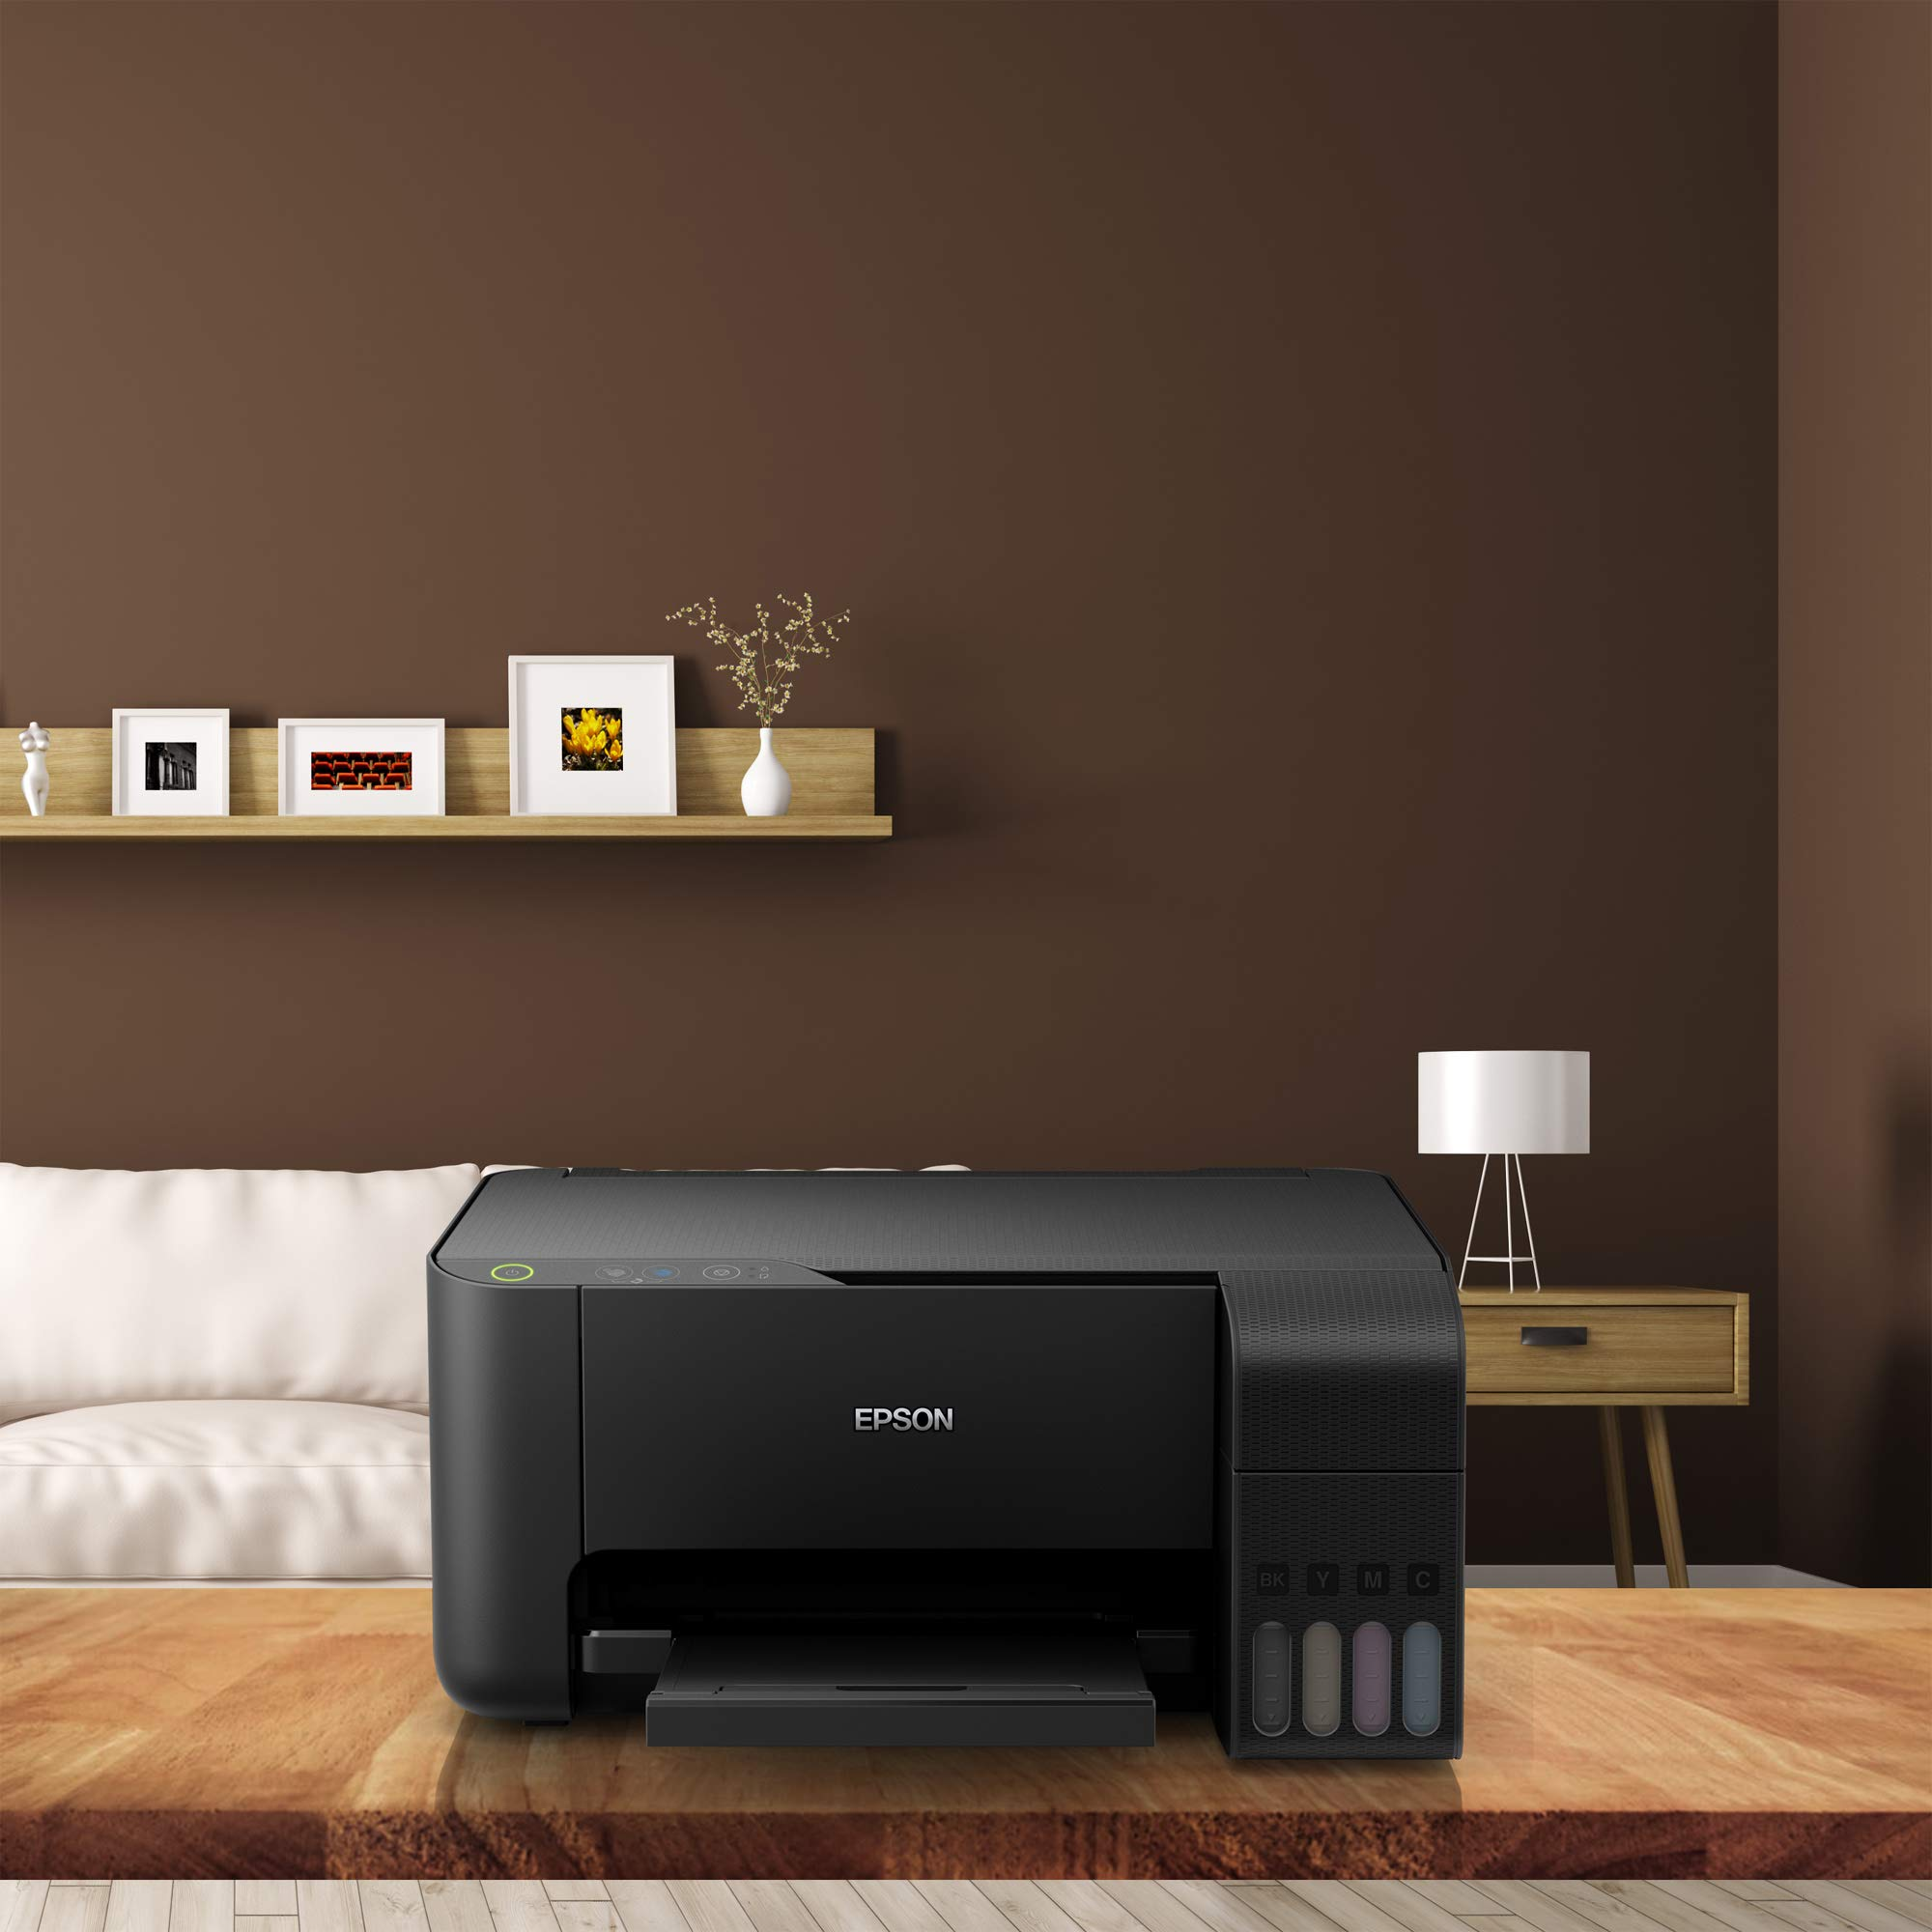 Image result for EPSON 3150